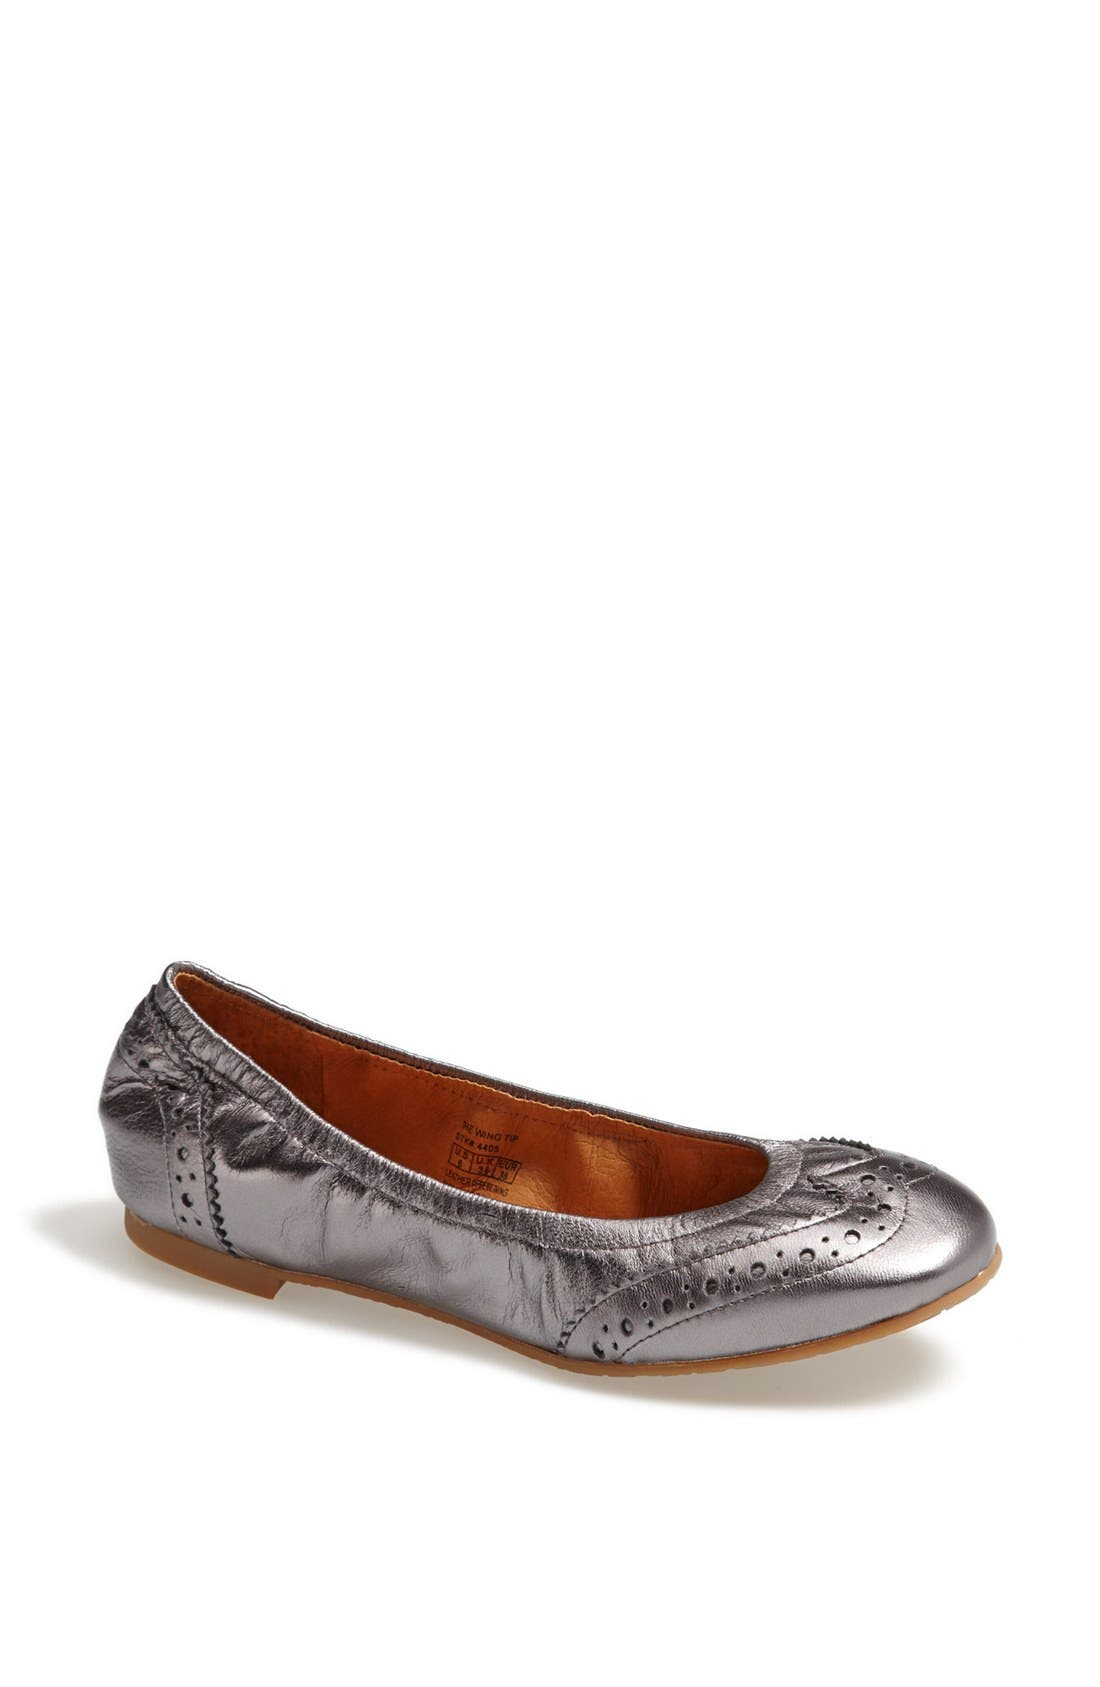 Alternate Image 1 Selected - Juil 'The Wing Tip' Copper Grounded Metallic Leather Flat